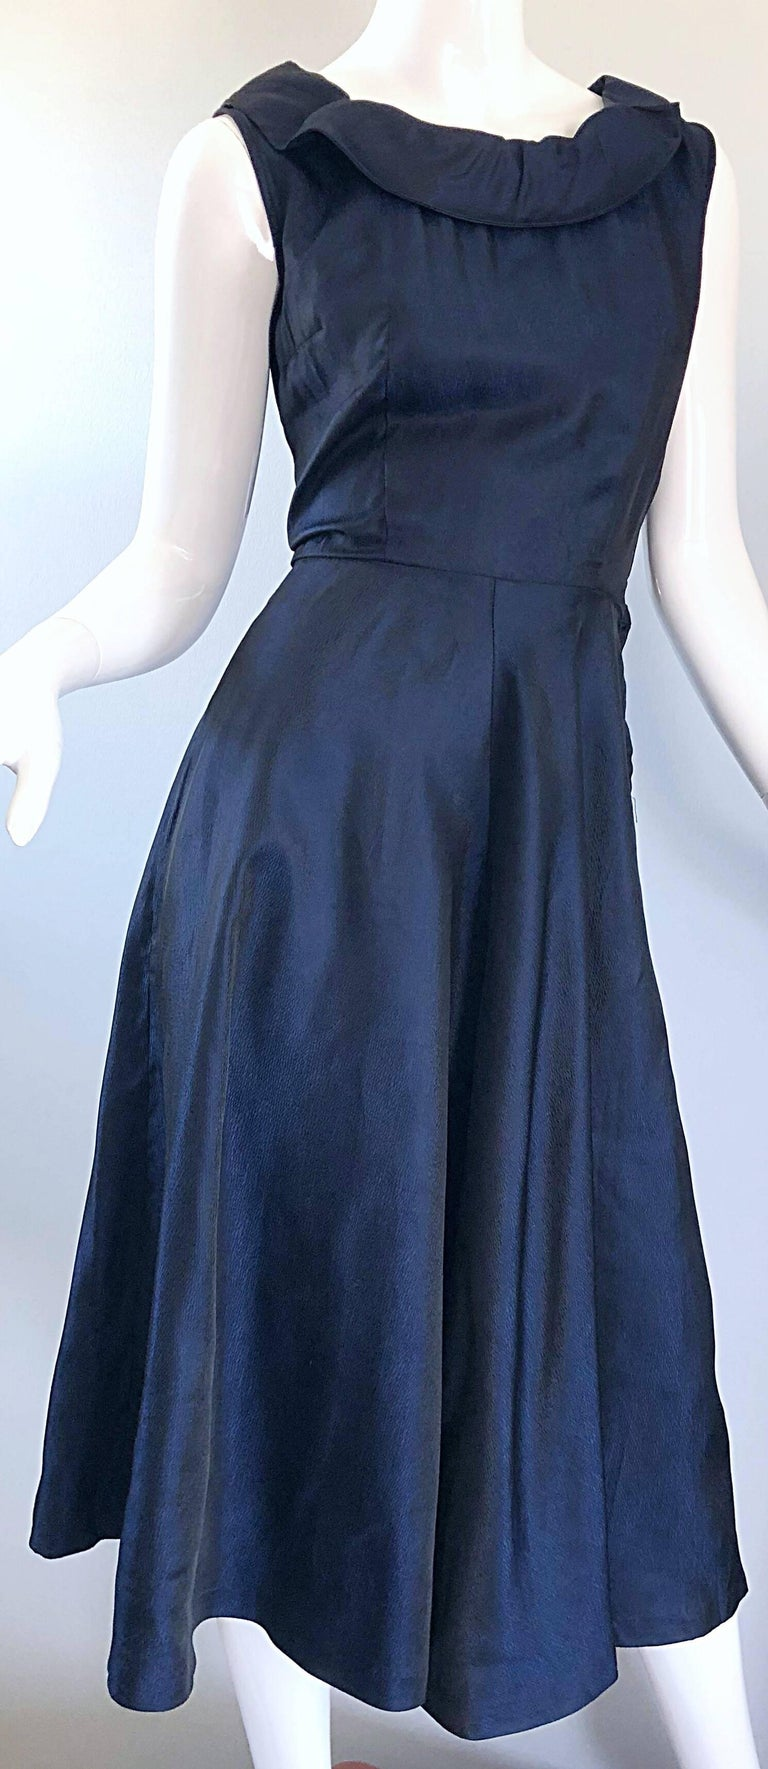 1950s Navy Midnight Blue Fit n ' Flare Vintage 50s Demi Couture Silk Dress For Sale 3